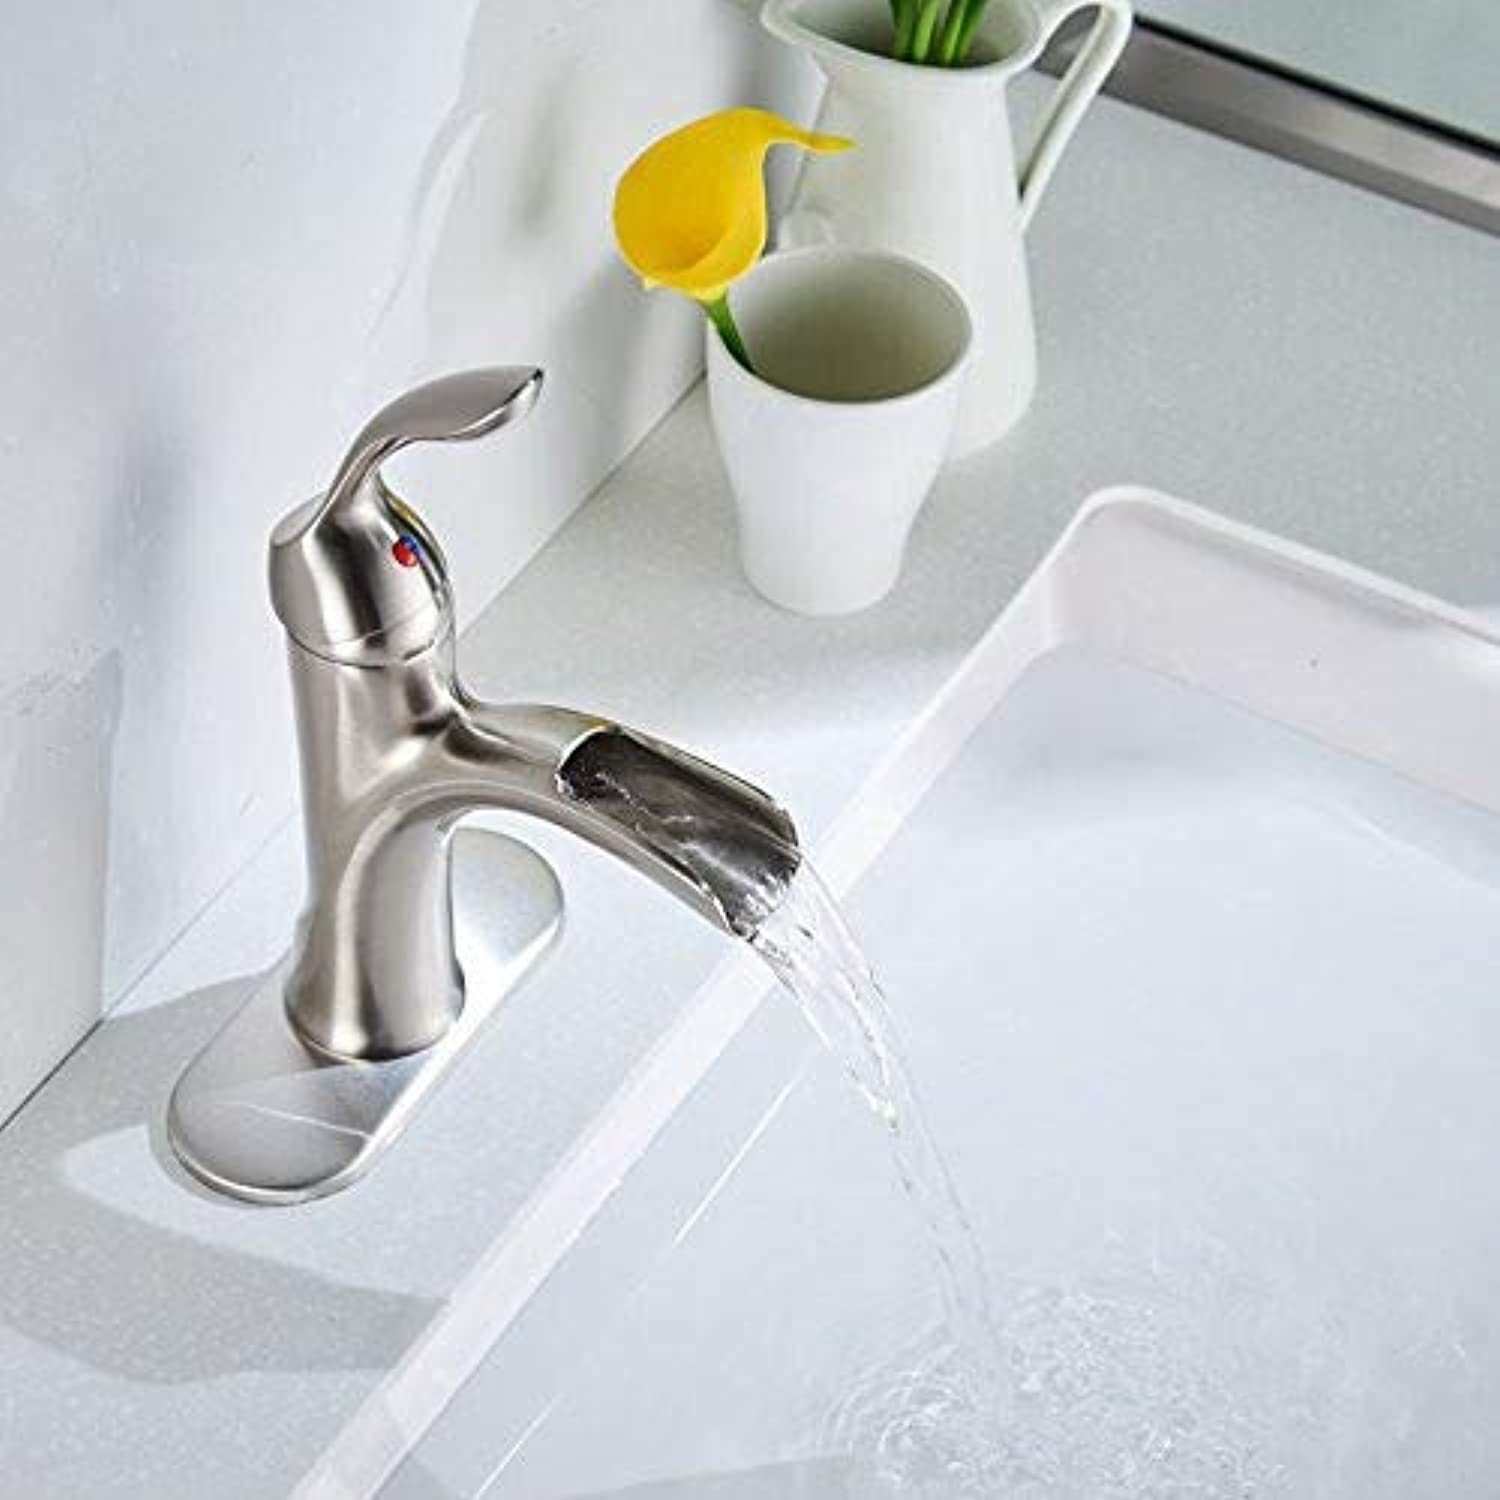 redOOY Taps Bathroom Basin Faucet Vanity Sink Mixer Brushed Nickel Faucet Waterfall Spout Tap Taps